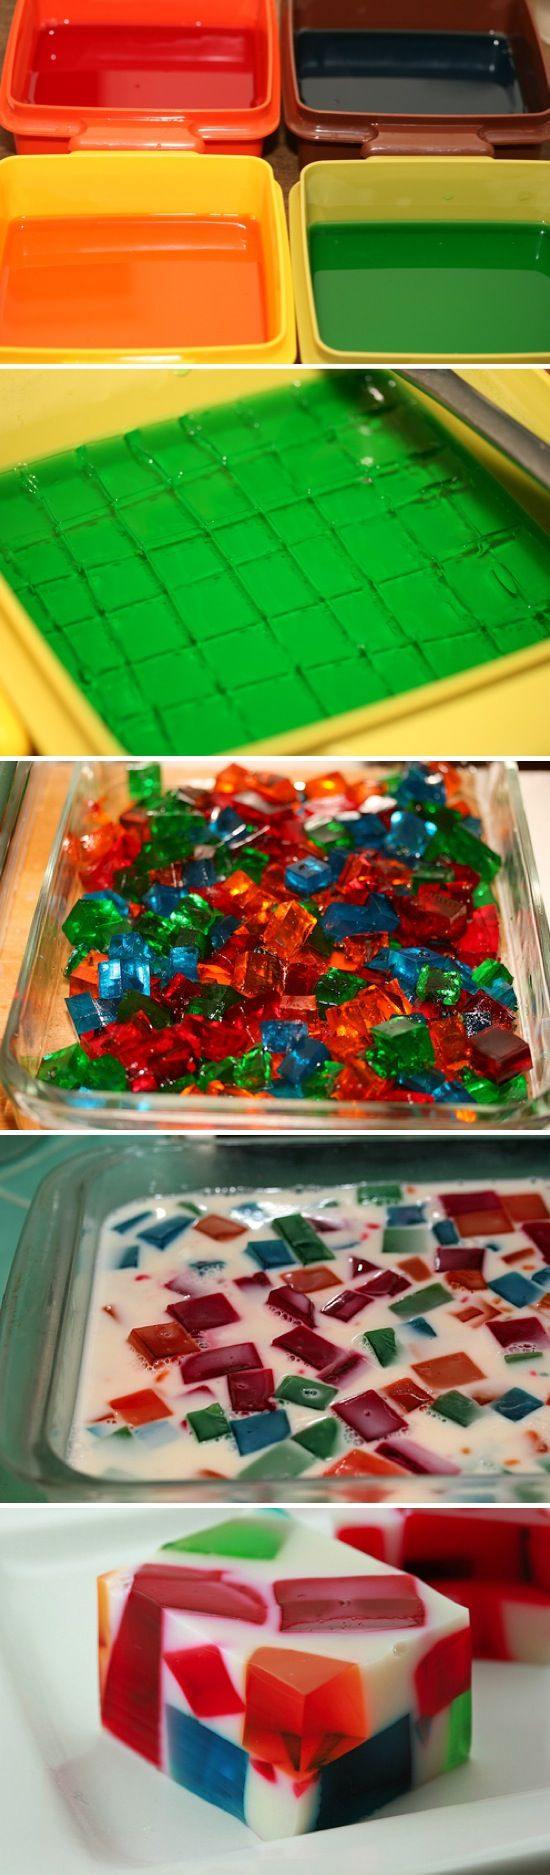 This is the coolest Jello idea! Although it takes a bit of planning ahead for the Jello to cool, it looks like it would be a lot of fun. Make it into a holiday jello by using festive colors; red, white, and blue for The 4th of July, red and green for Christmas, pastels for Easter, etc.